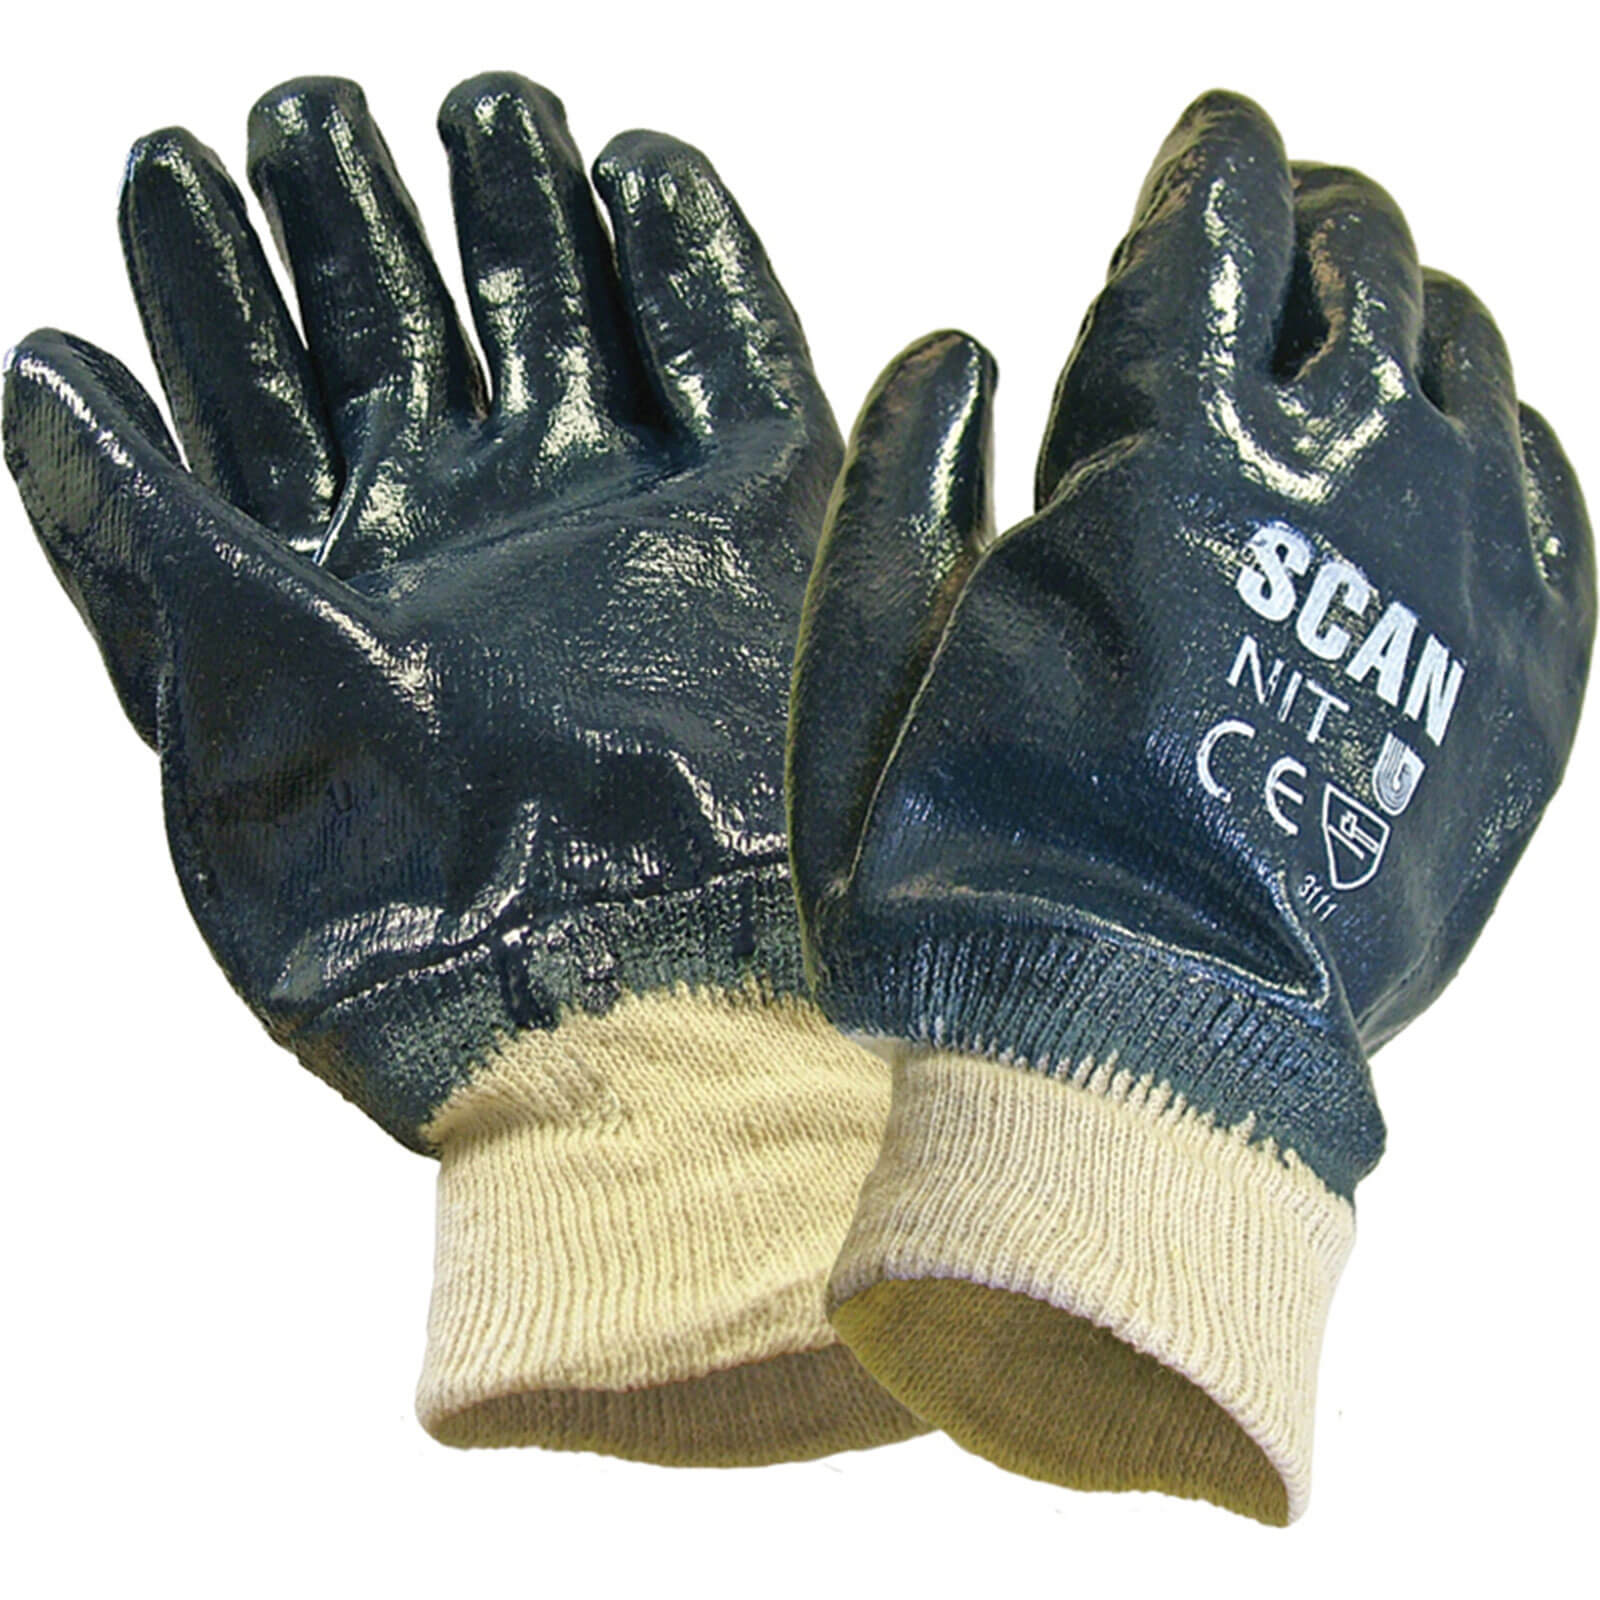 Image of Scan Nitrile Heavy Duty Gloves One Size